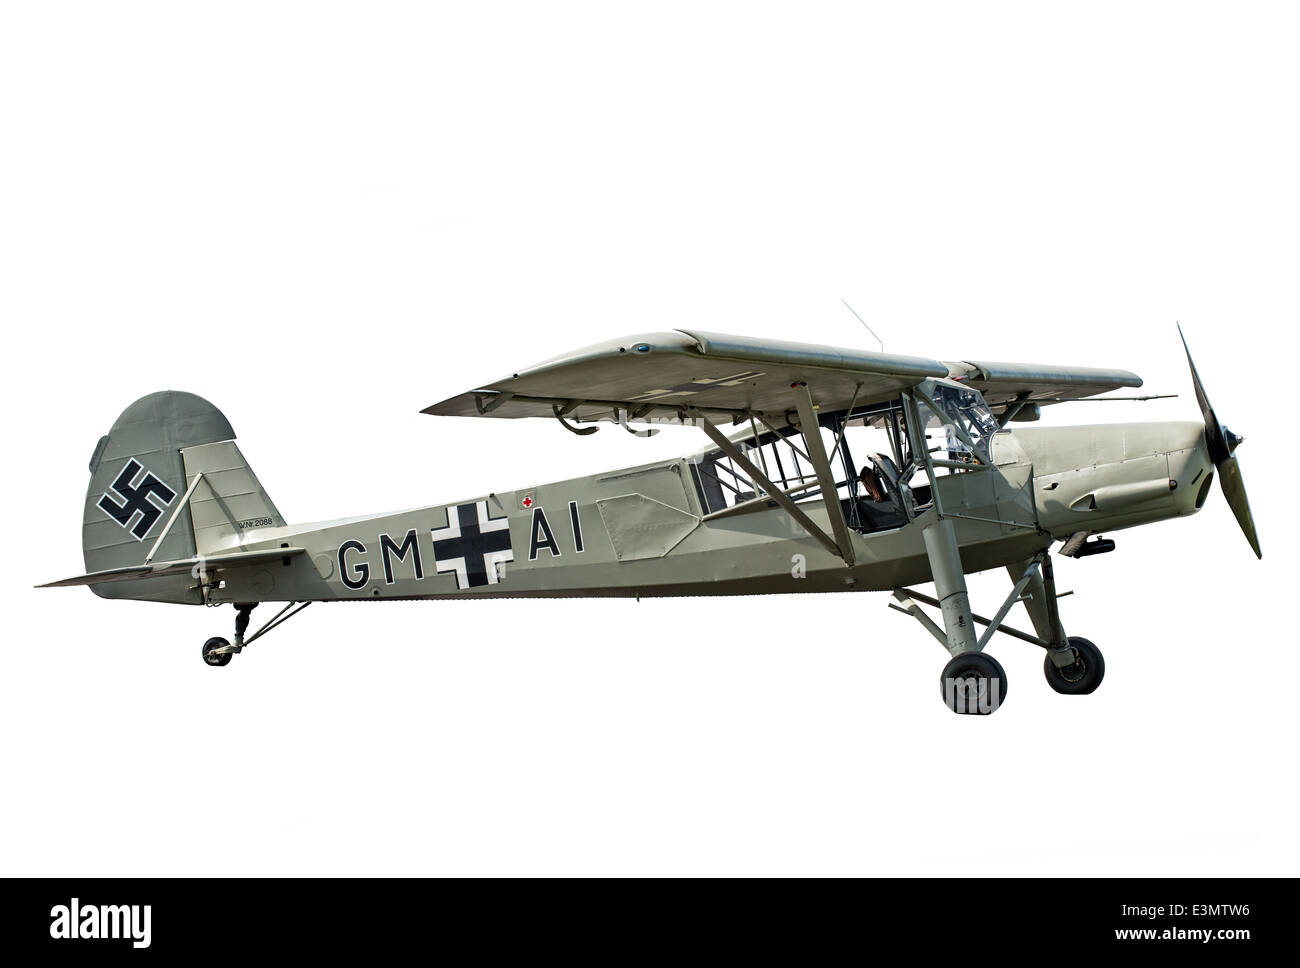 Ww2 German Aircraft Stock Photos & Ww2 German Aircraft Stock